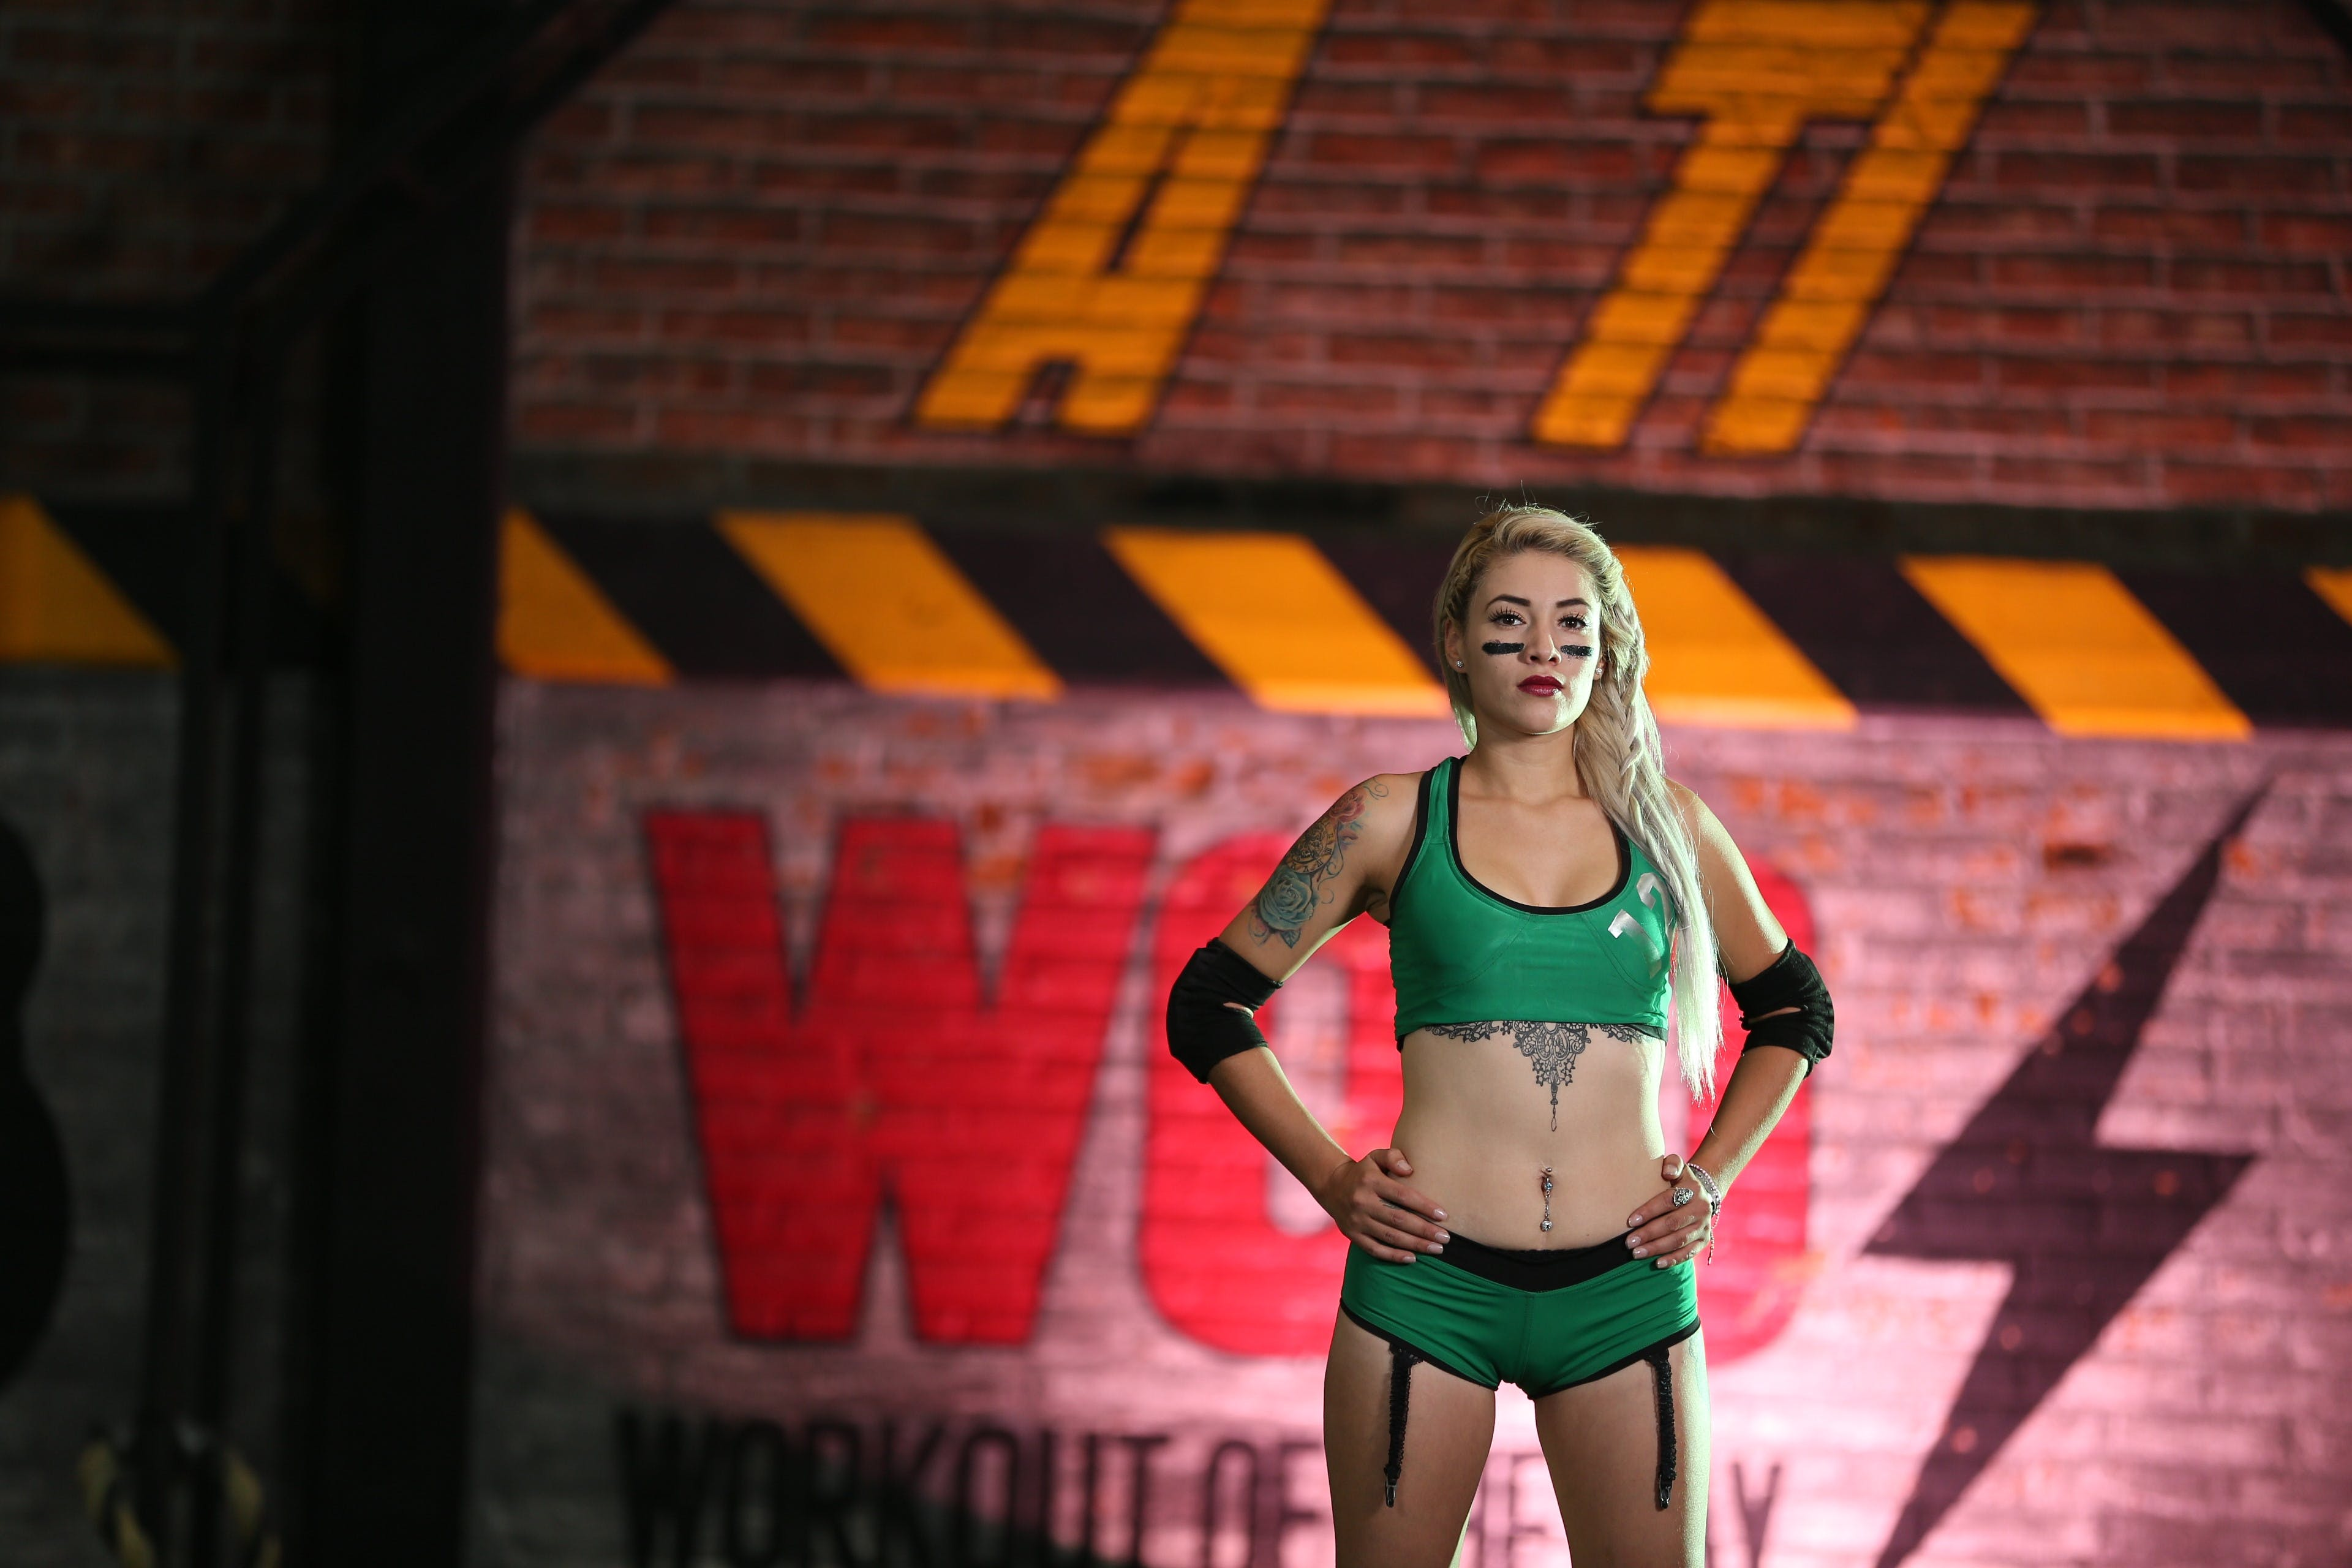 Woman Wearing Green Sports Bra and Bottoms